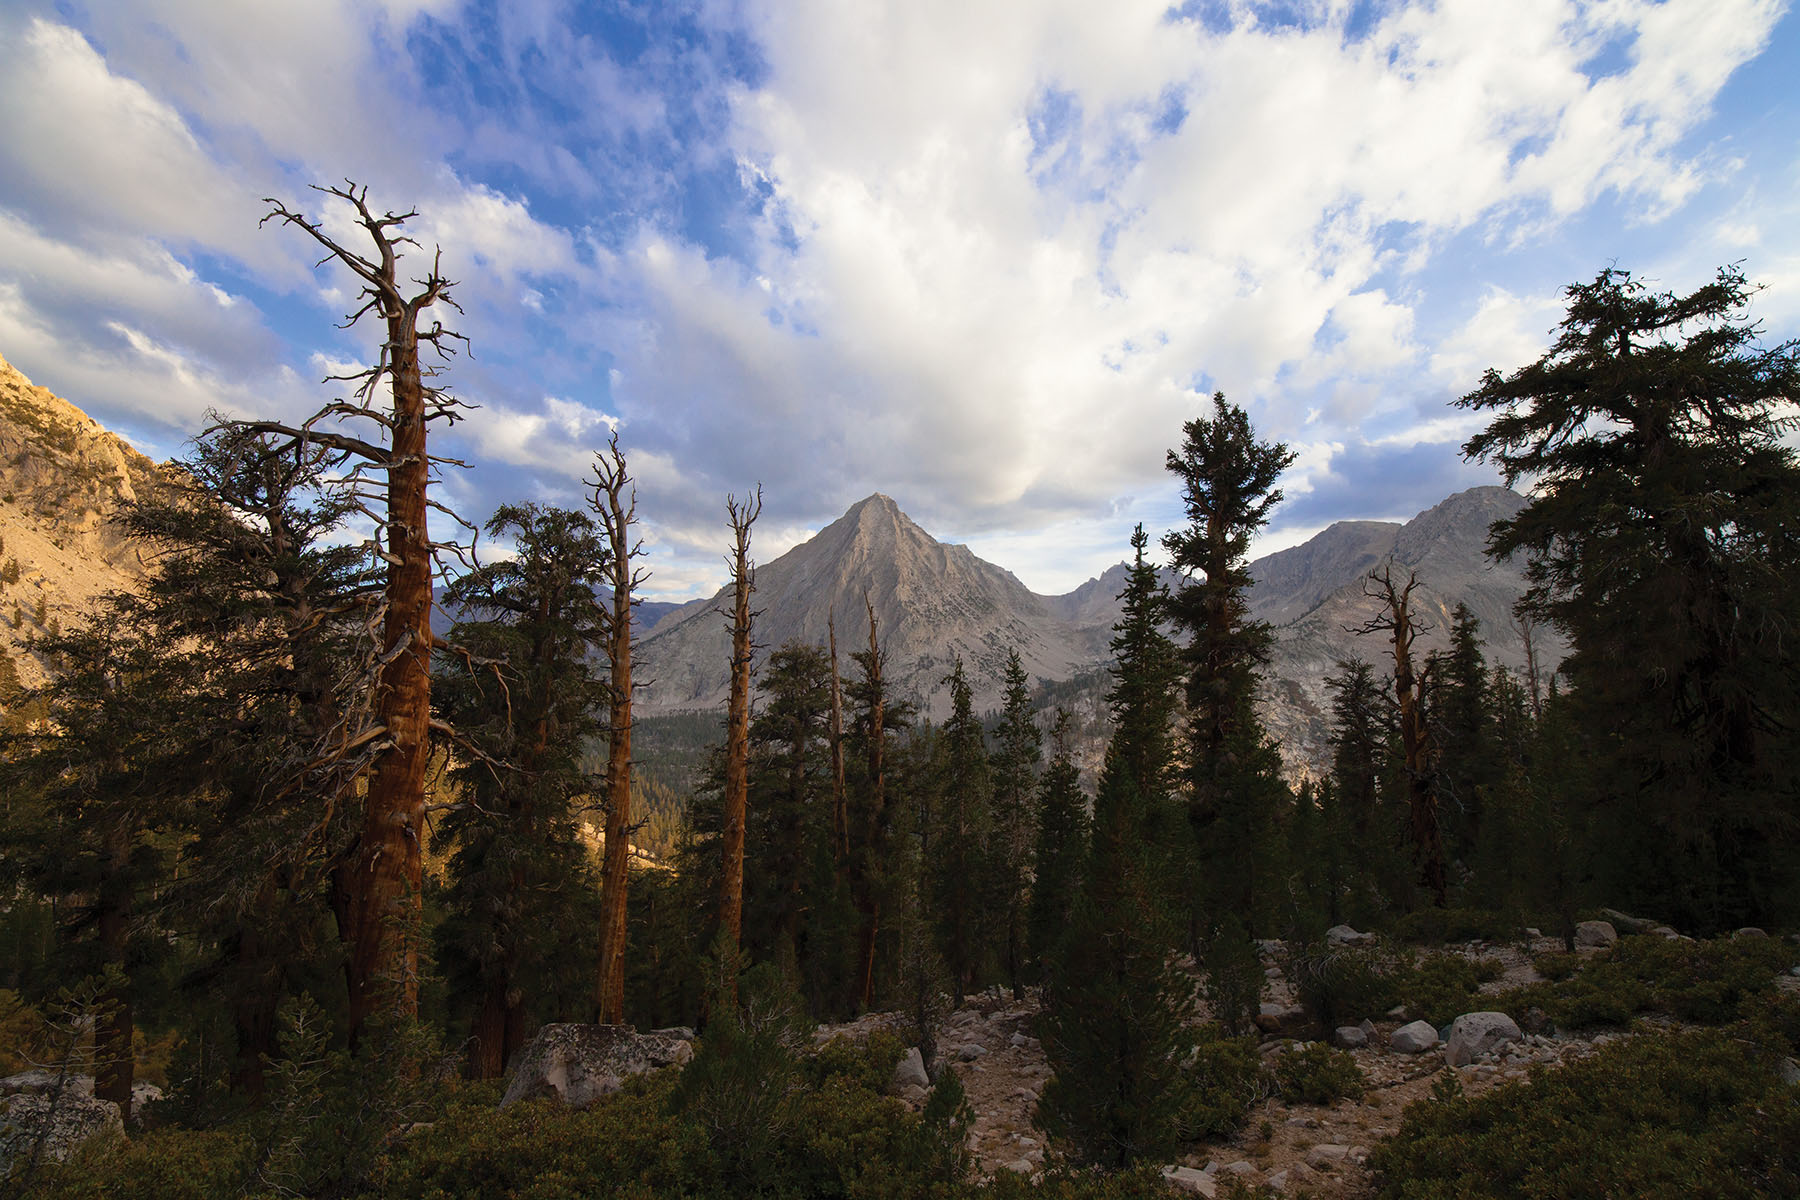 The High Sierra backcountry offers sweeping mountain views